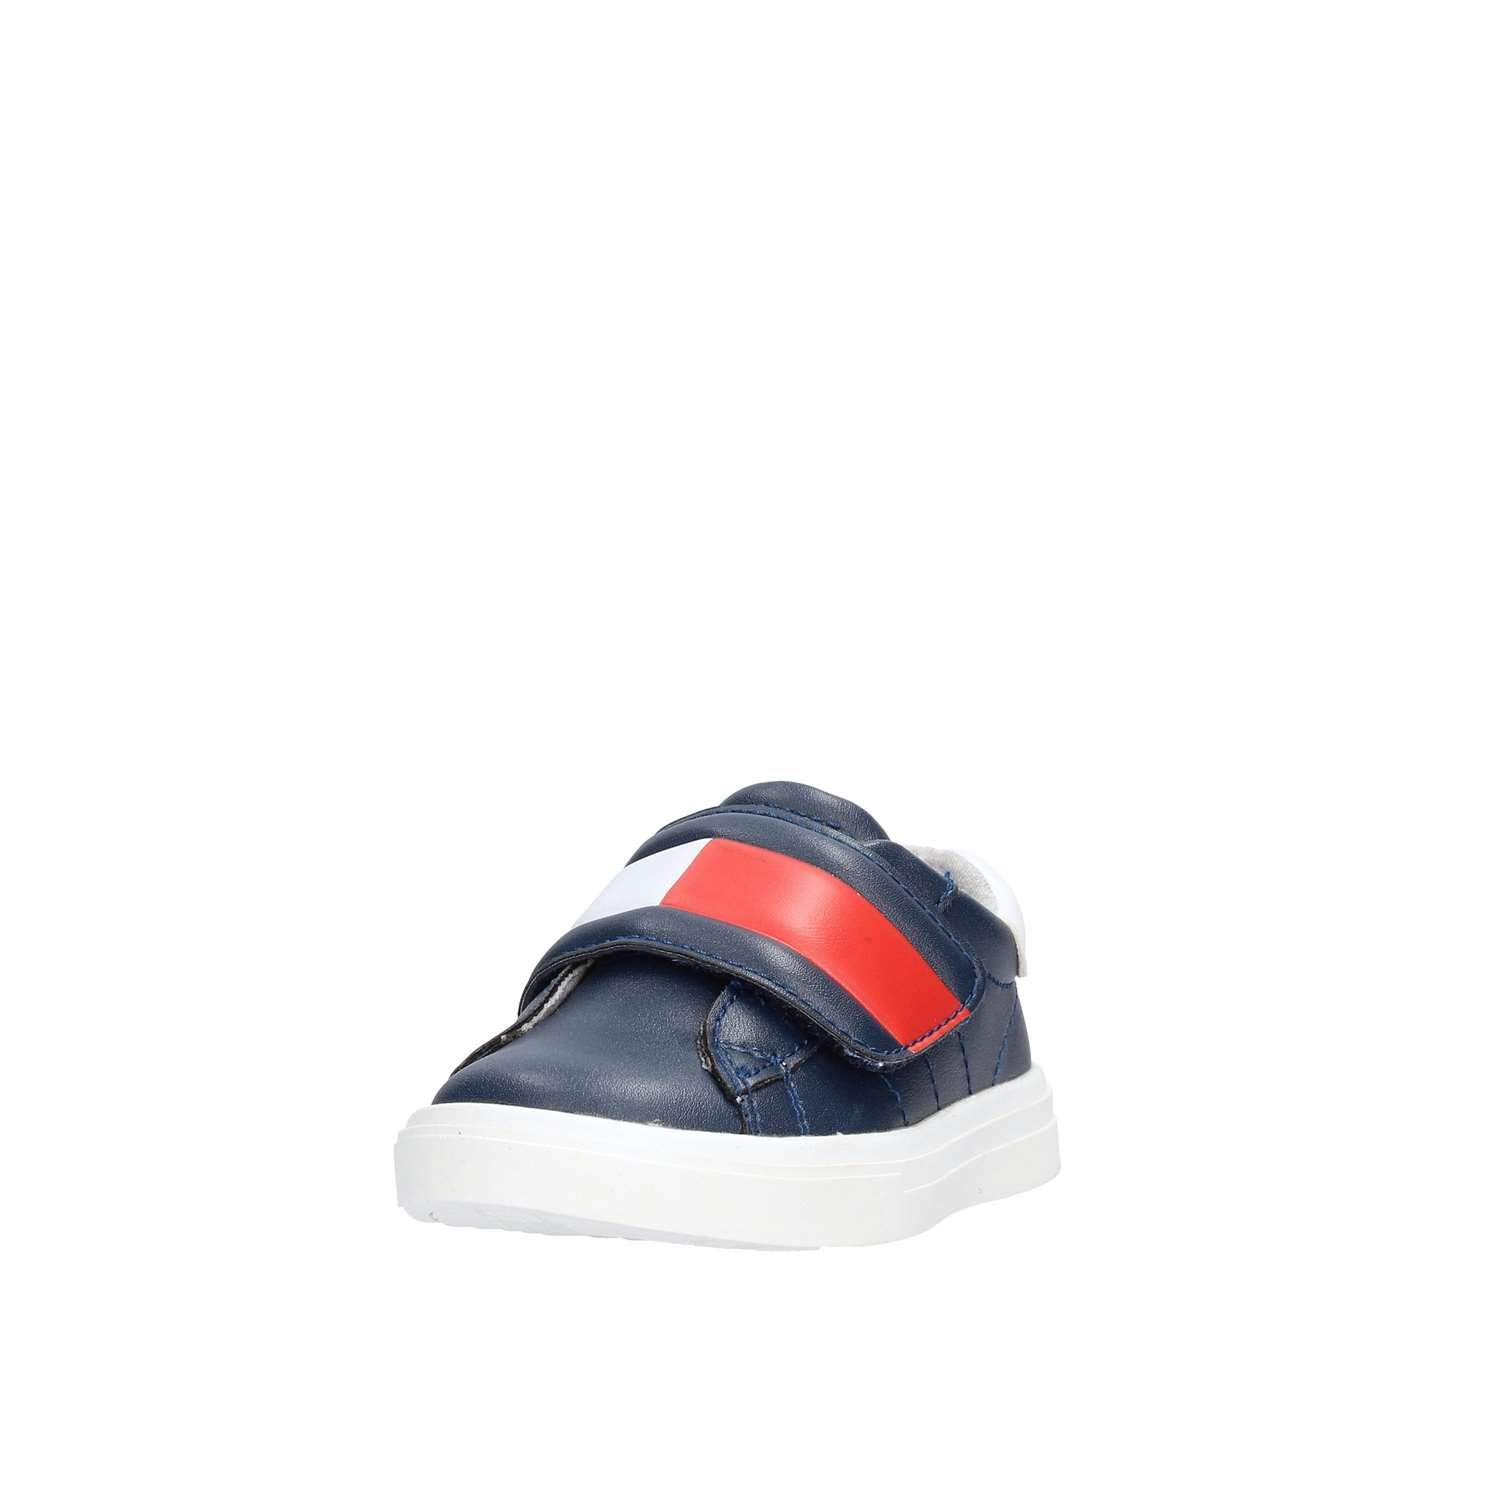 Amazon.com: Tommy Hilfiger T1B4-30304-0622 - Zapatillas de ...